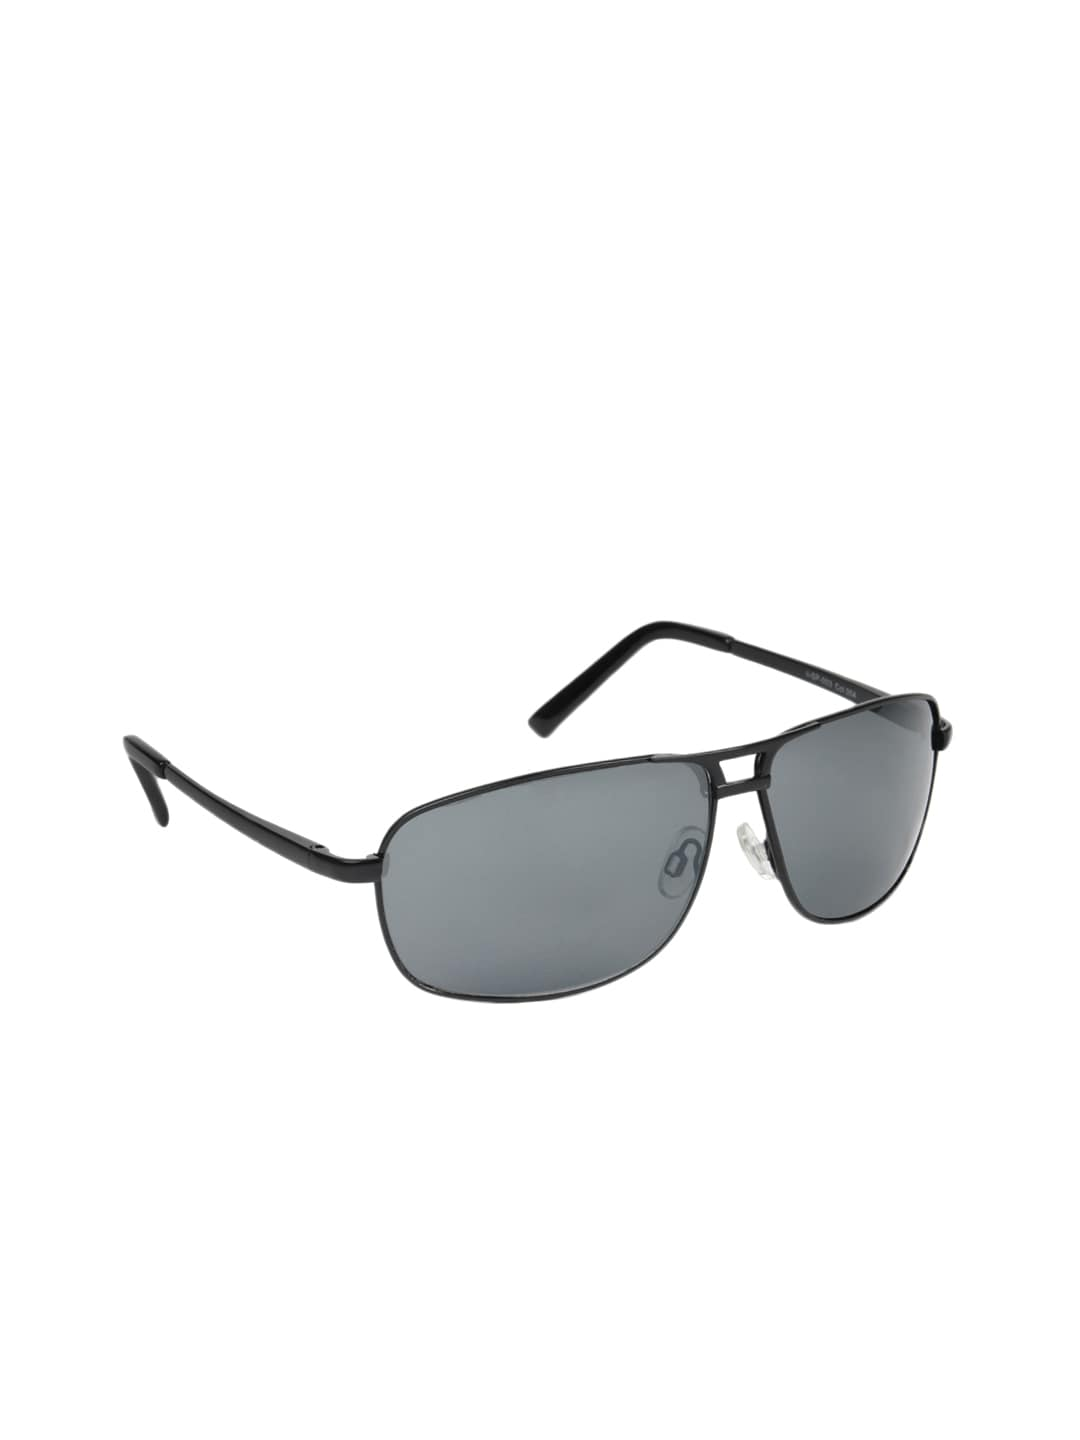 Speedo Speedo Men Sunglasses (Multicolor)